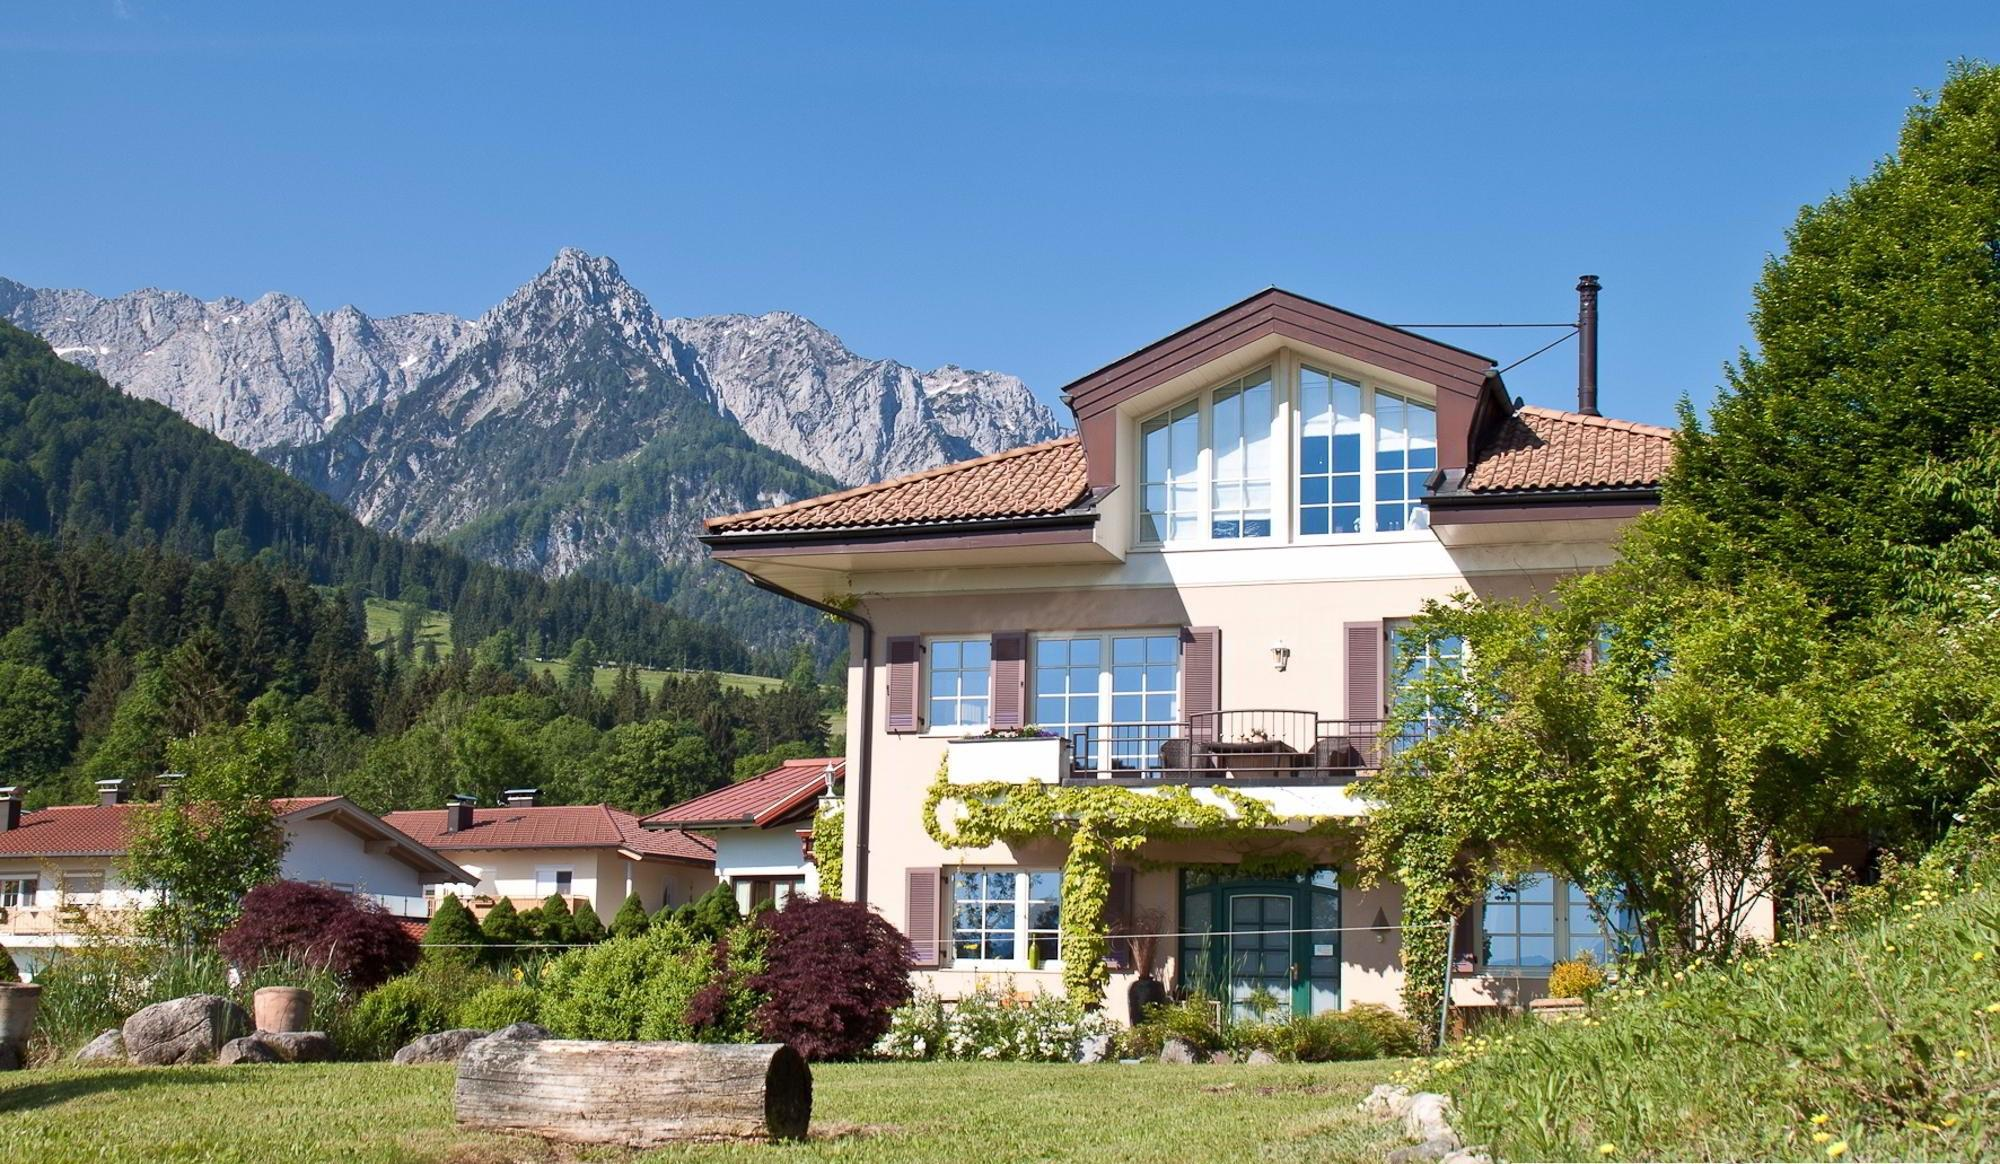 Comfortable country villa with a lake view in village of Walchsee for Sale - Austria - Tirol